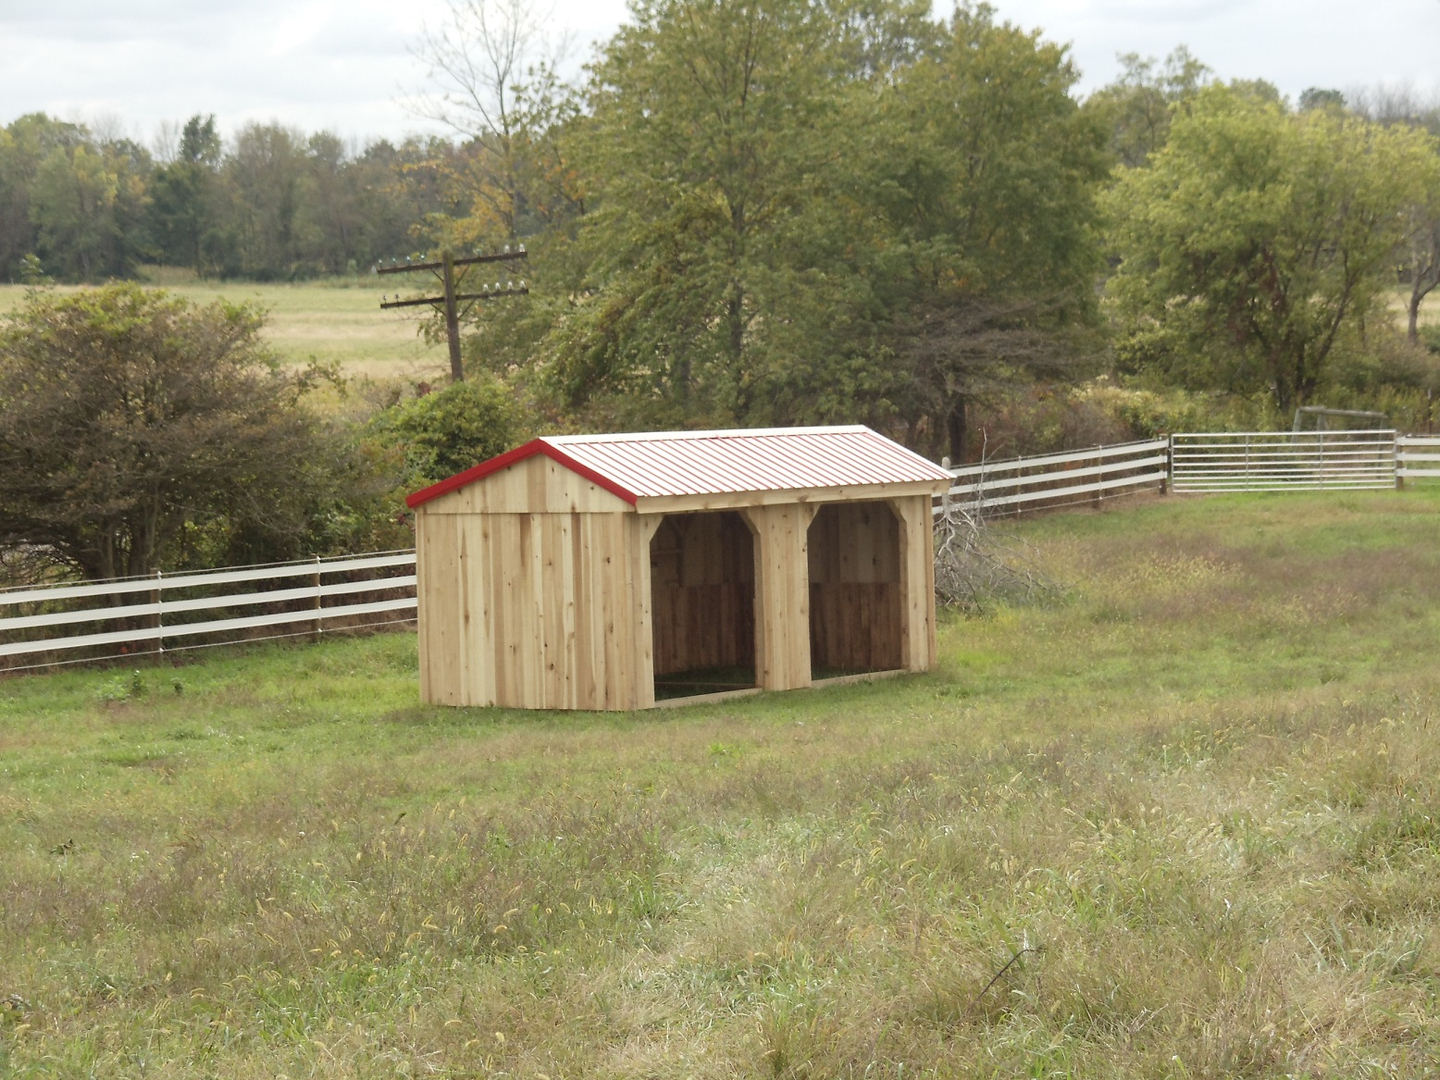 secure barns shelters kits horizon sheds shed provide are wooden offers cost structures an horse round year shelter way to that attractive and yet run our safe low in